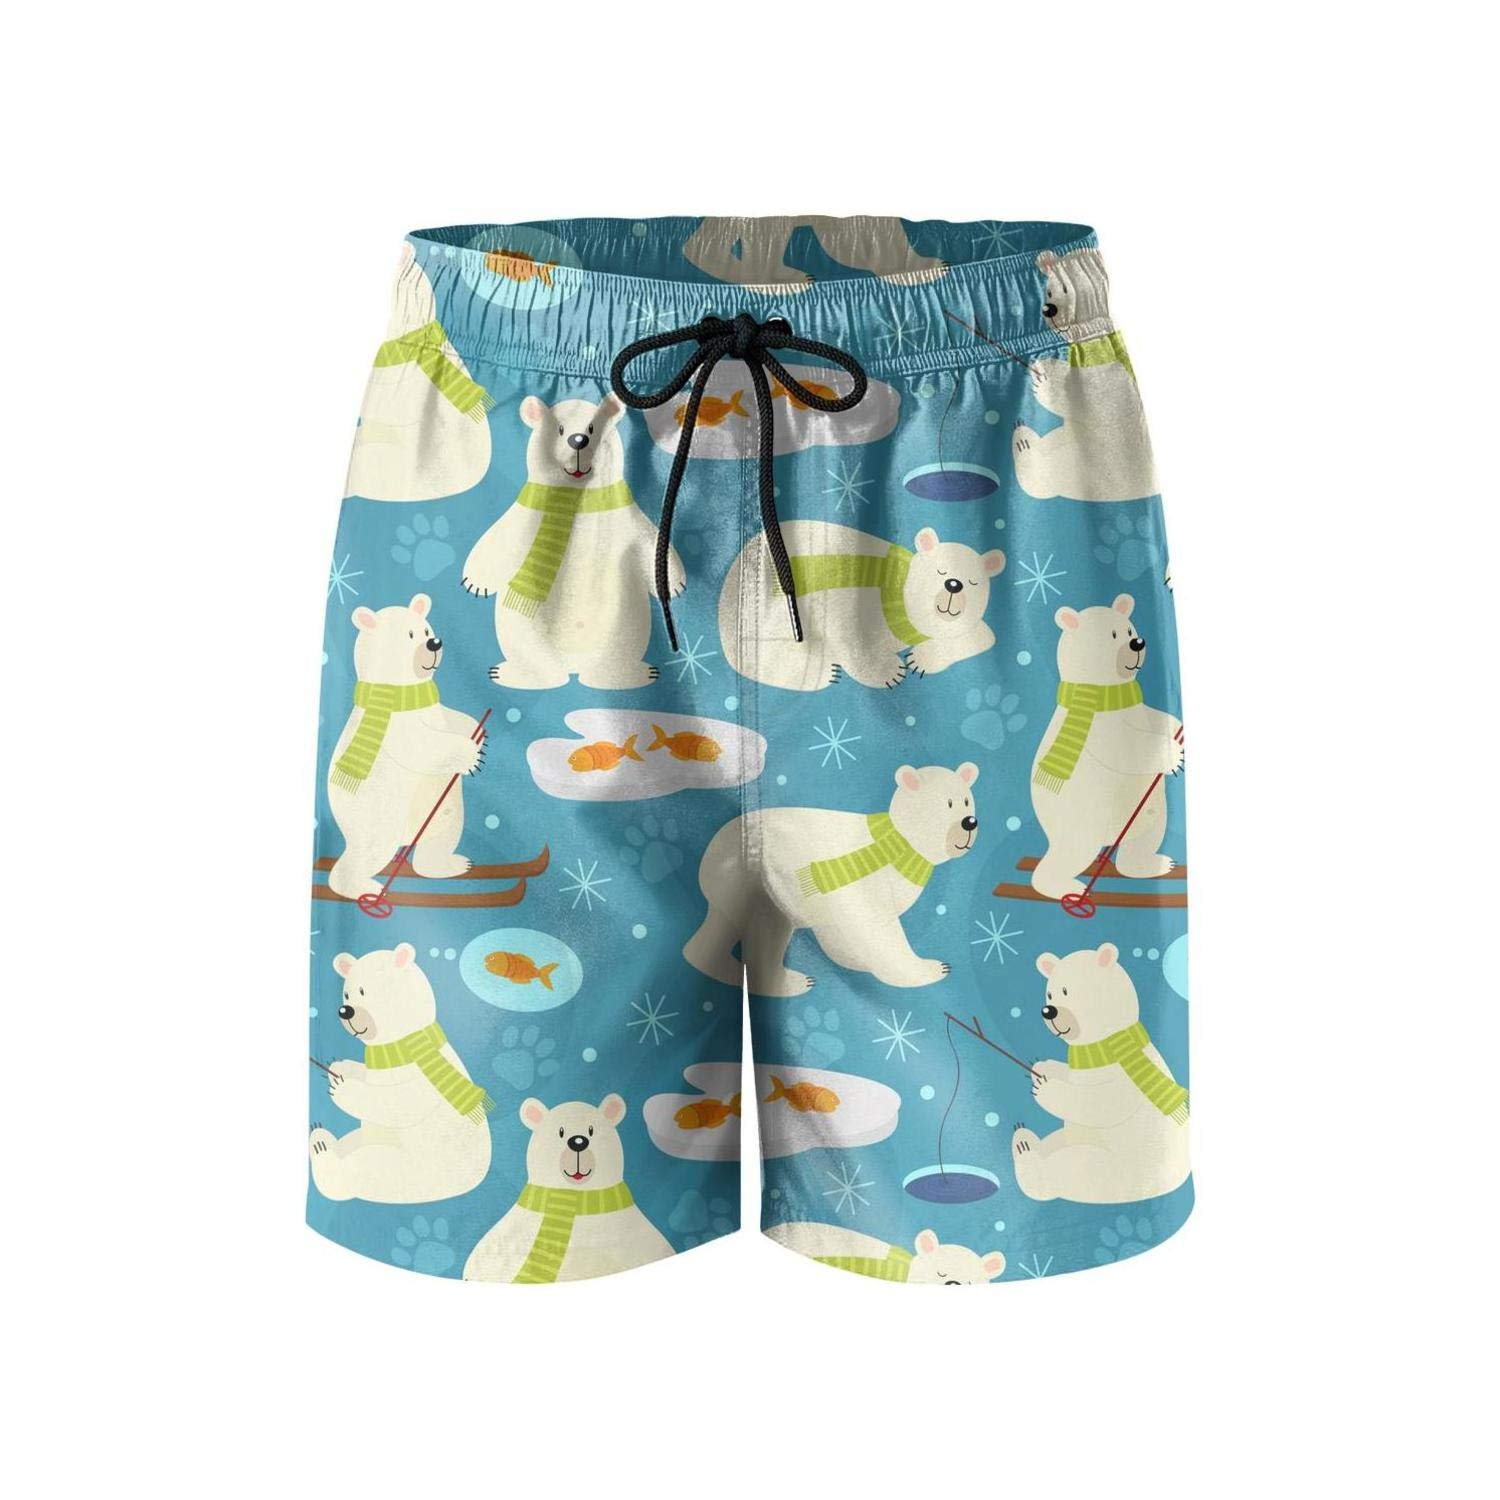 Men Sporty Printed Absorbent Swimming Trunks Short-Navy Anchors Pattern Style Beach Shorts